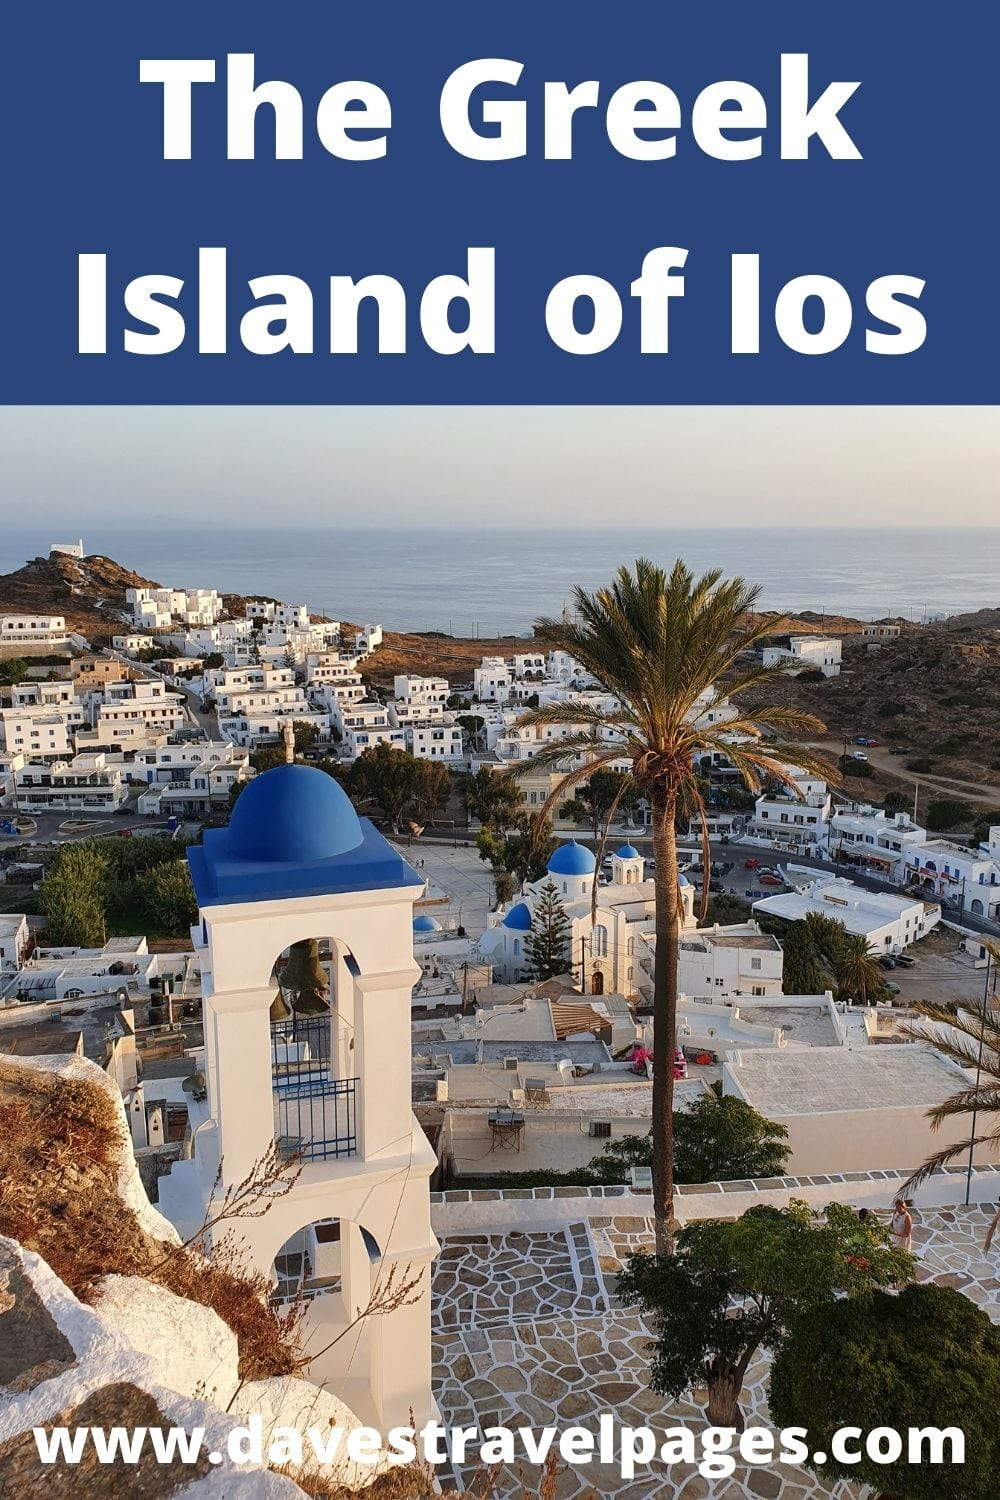 How to get to the Greek island of Ios from Mykonos